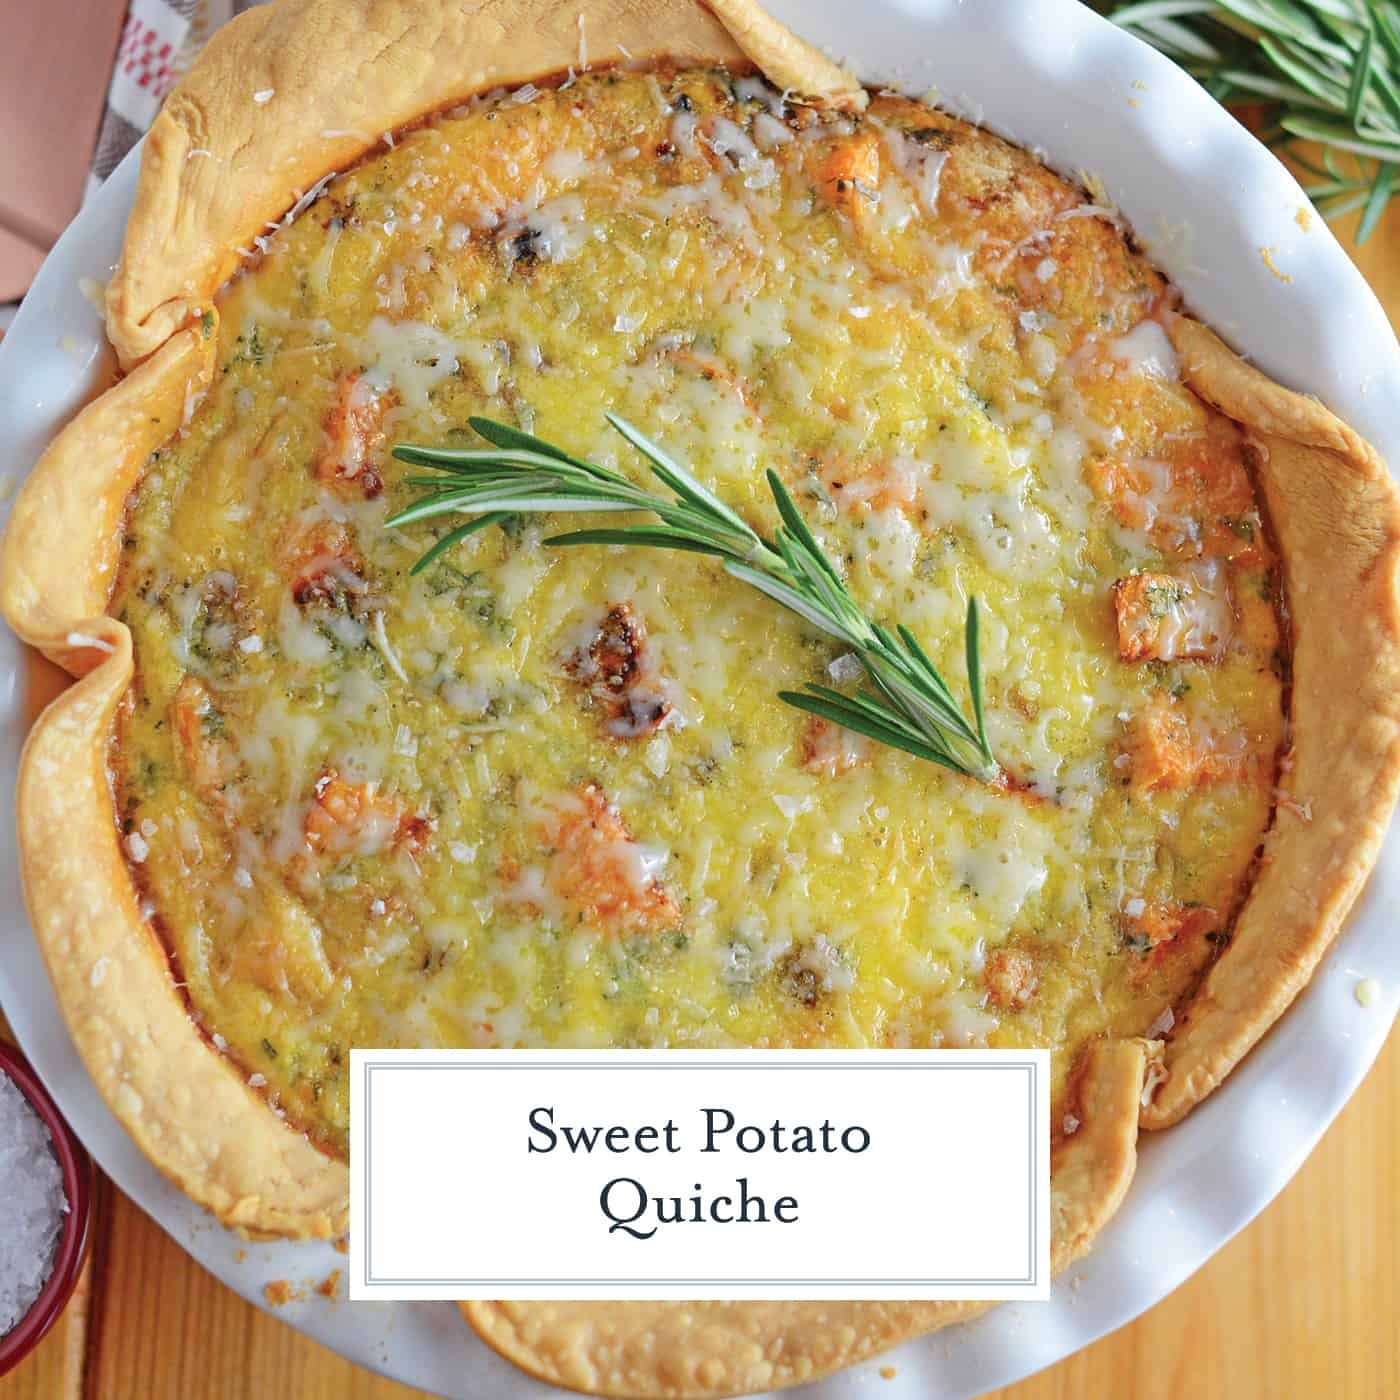 Sweet Potato Quiche is an easy quiche recipe that can be made for brunch, as an entree or side dish! The perfect recipe to serve during the colder seasons! #easyquicherecipe #breakfastquiche #baconquiche www.savoryexperiments.com